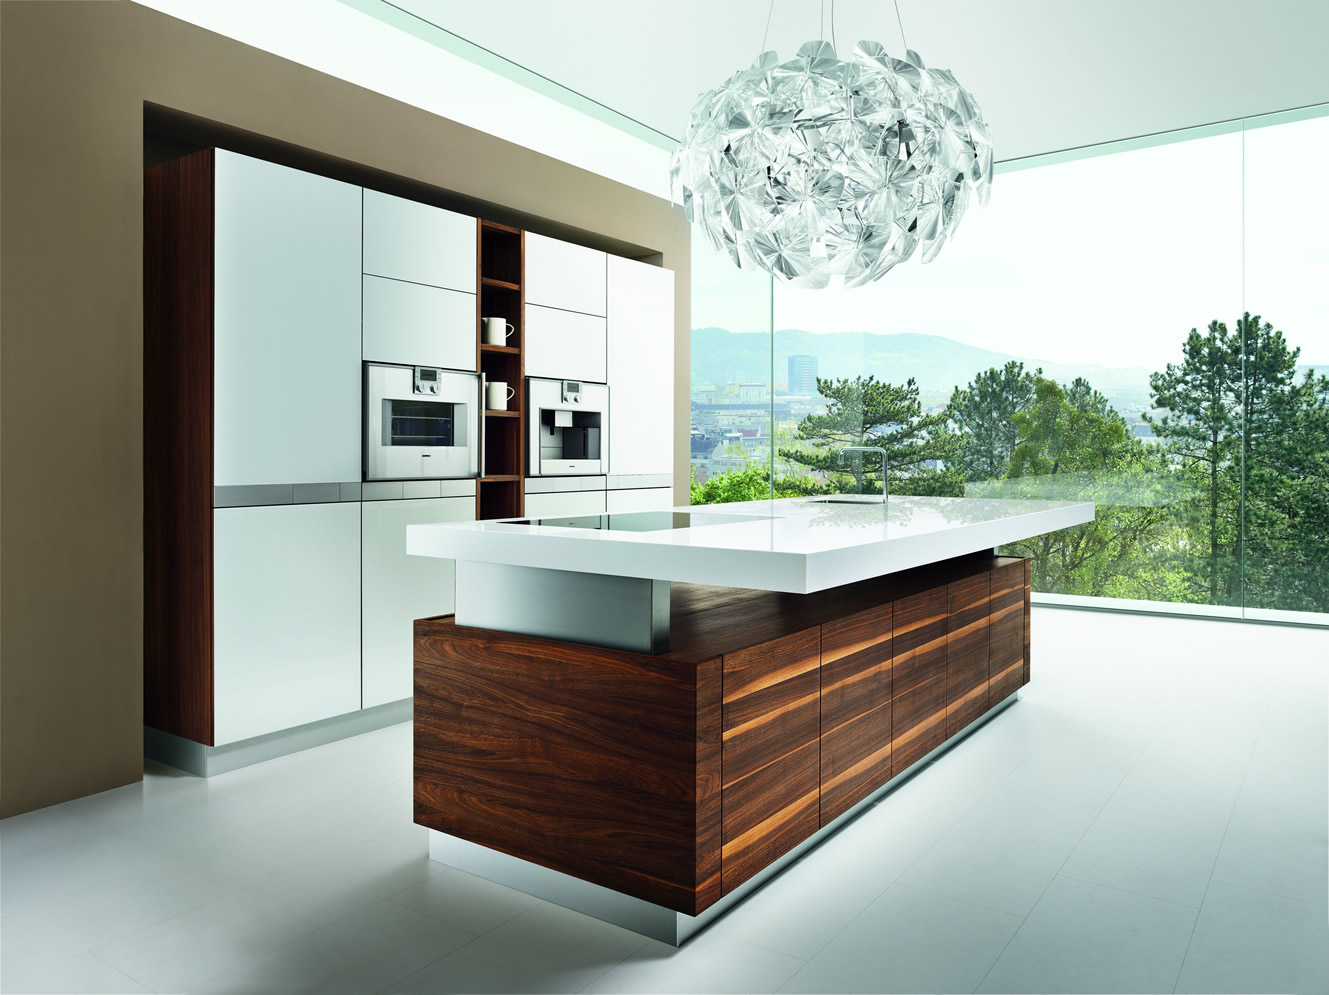 Contemporary Team 7 K7 kitchen with white and natural wood cabinetry by German Kitchen Center